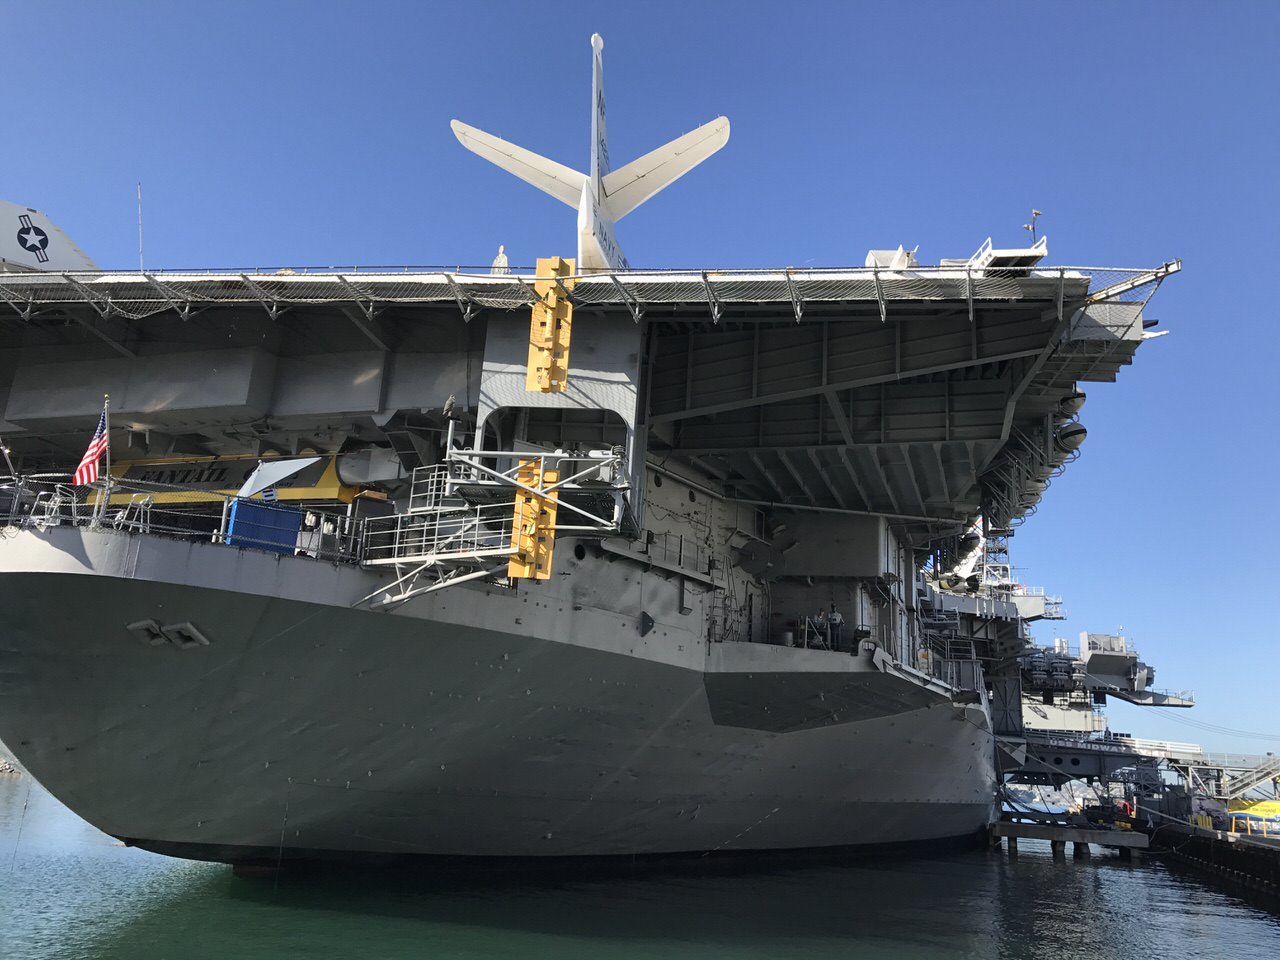 Uss midway museum 0549